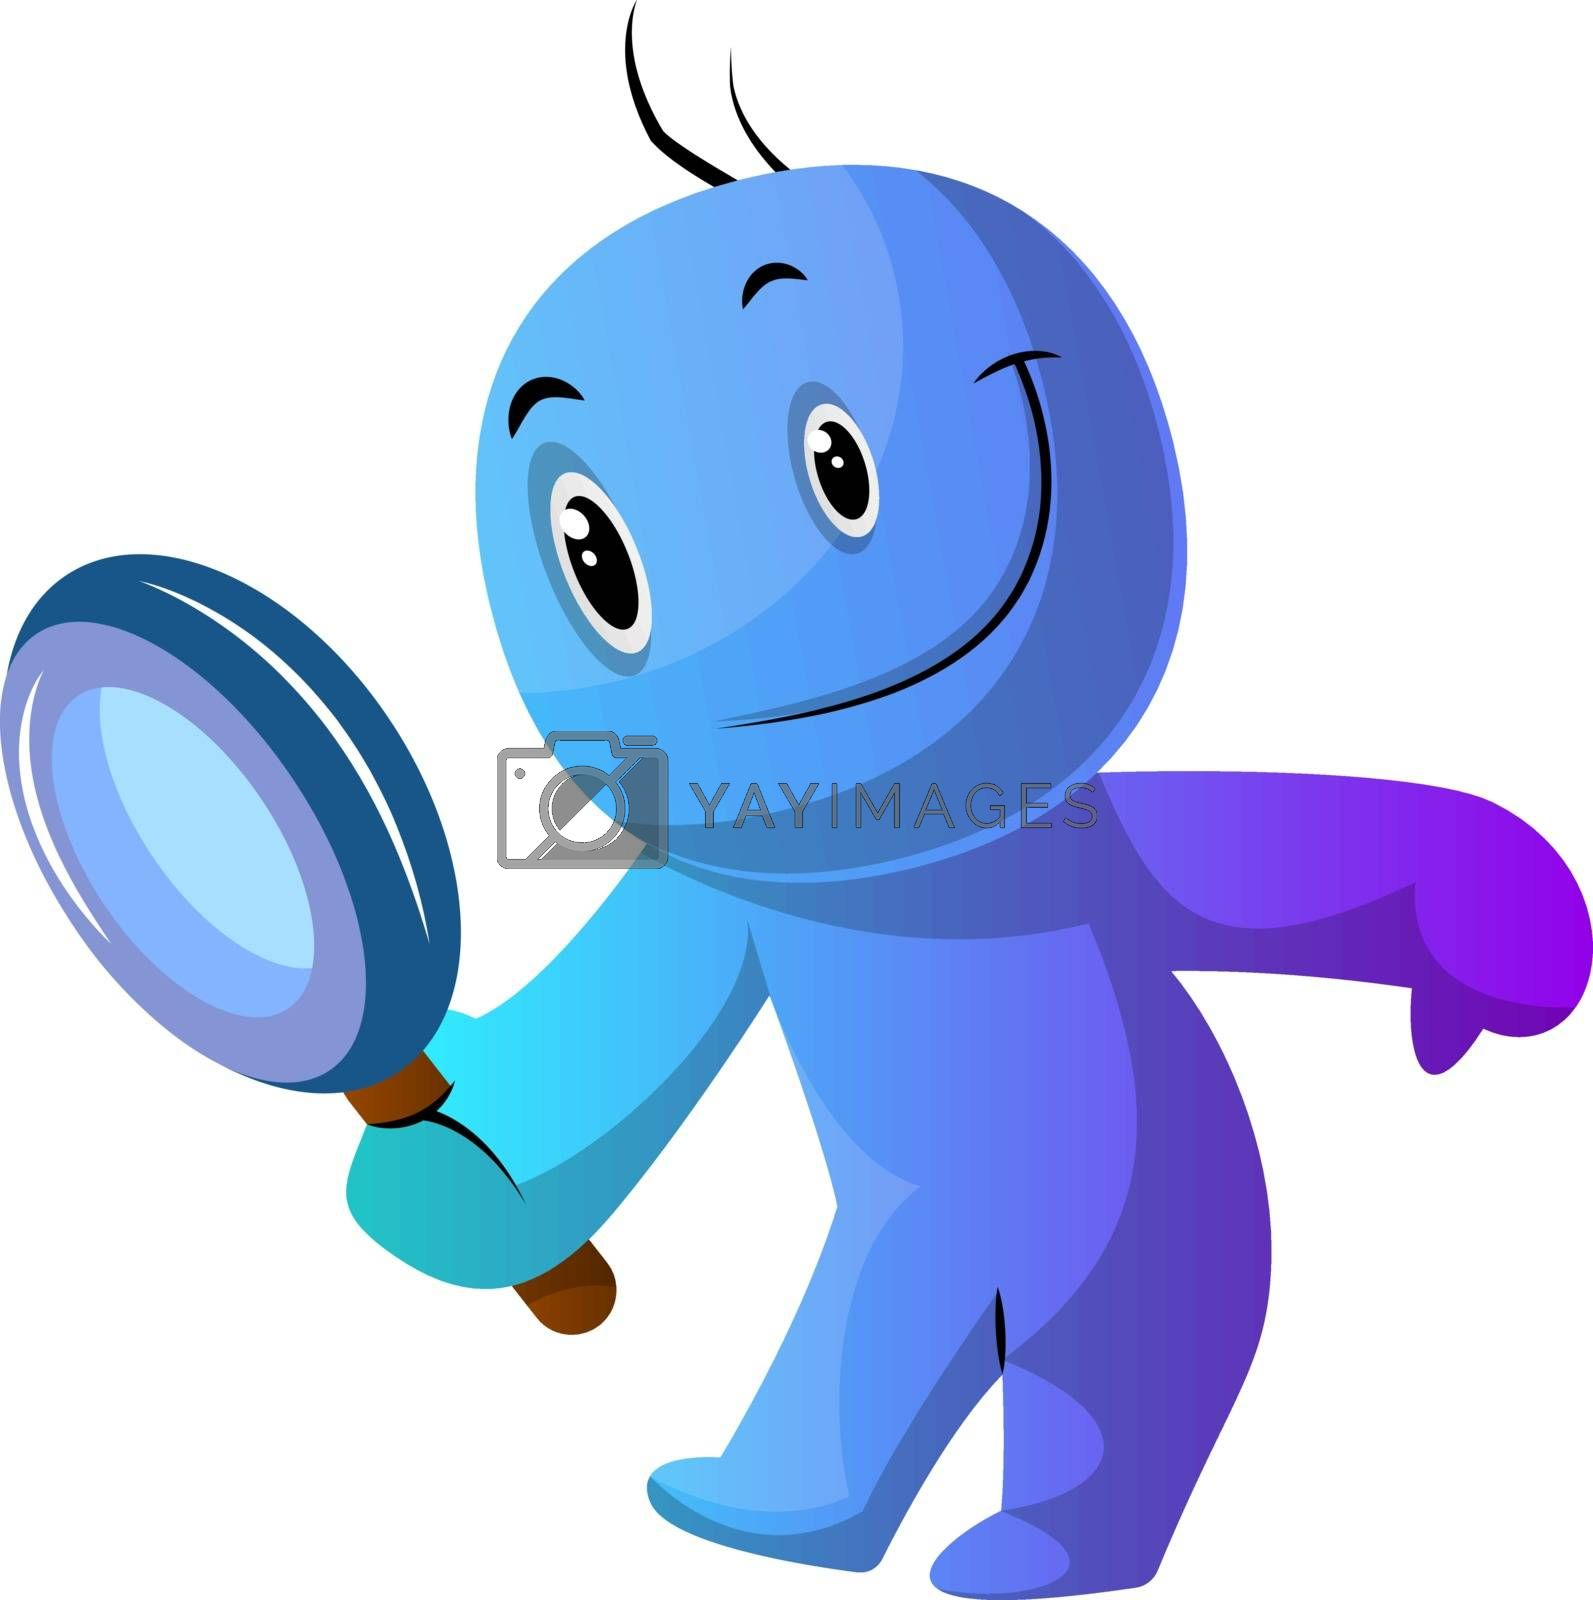 Royalty free image of Blue cartoon caracter holding magnifying glass illustration vect by Morphart